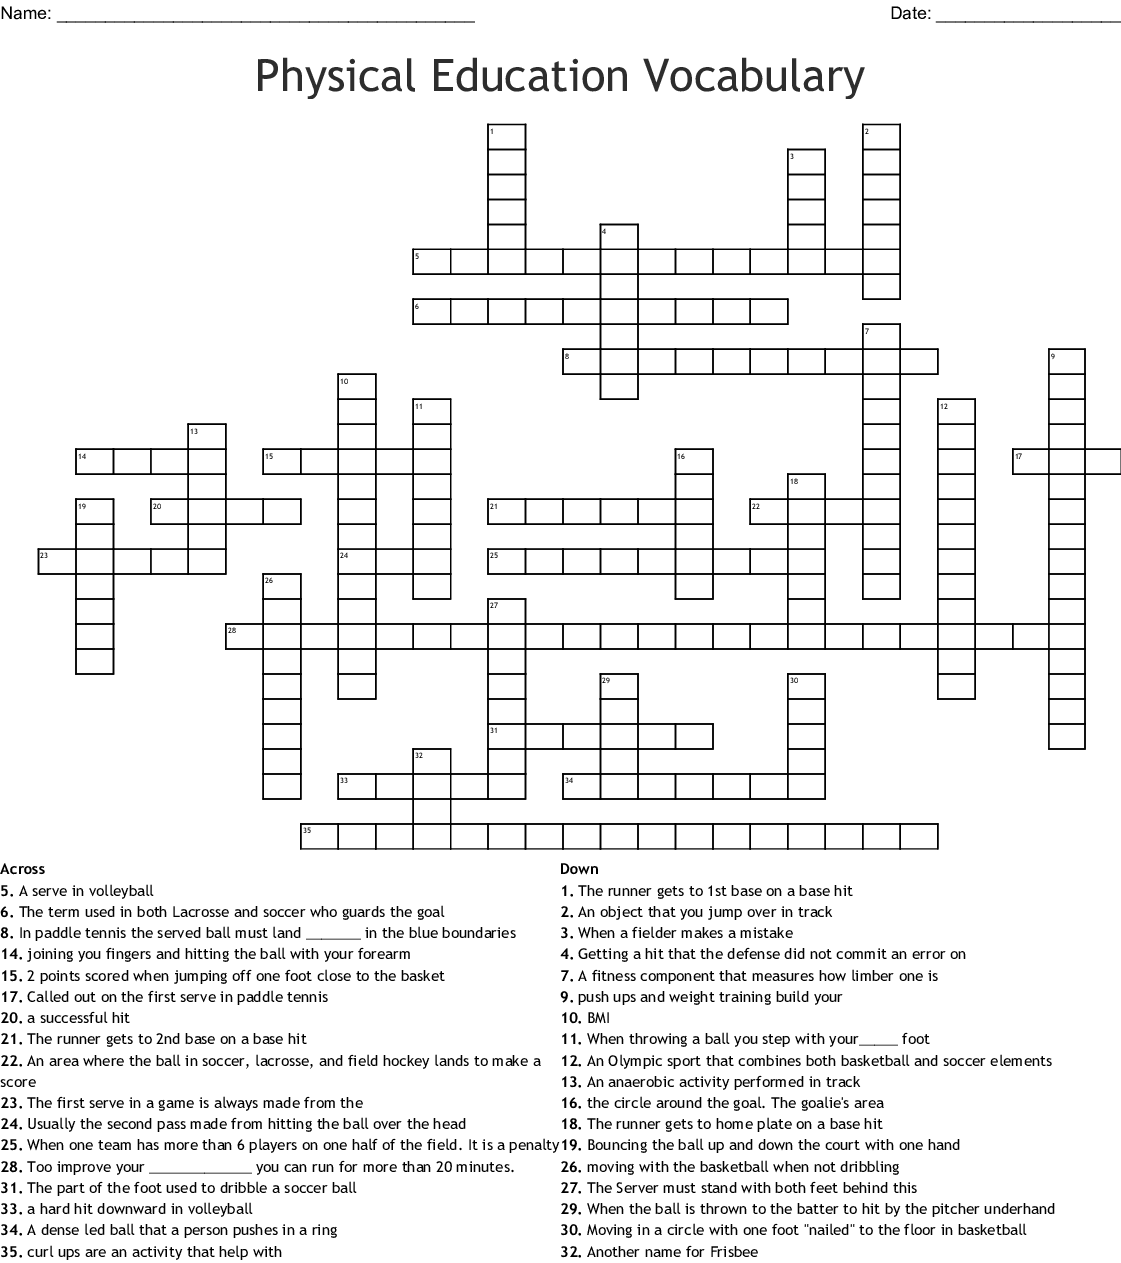 7th Grade Physical Education Word Search